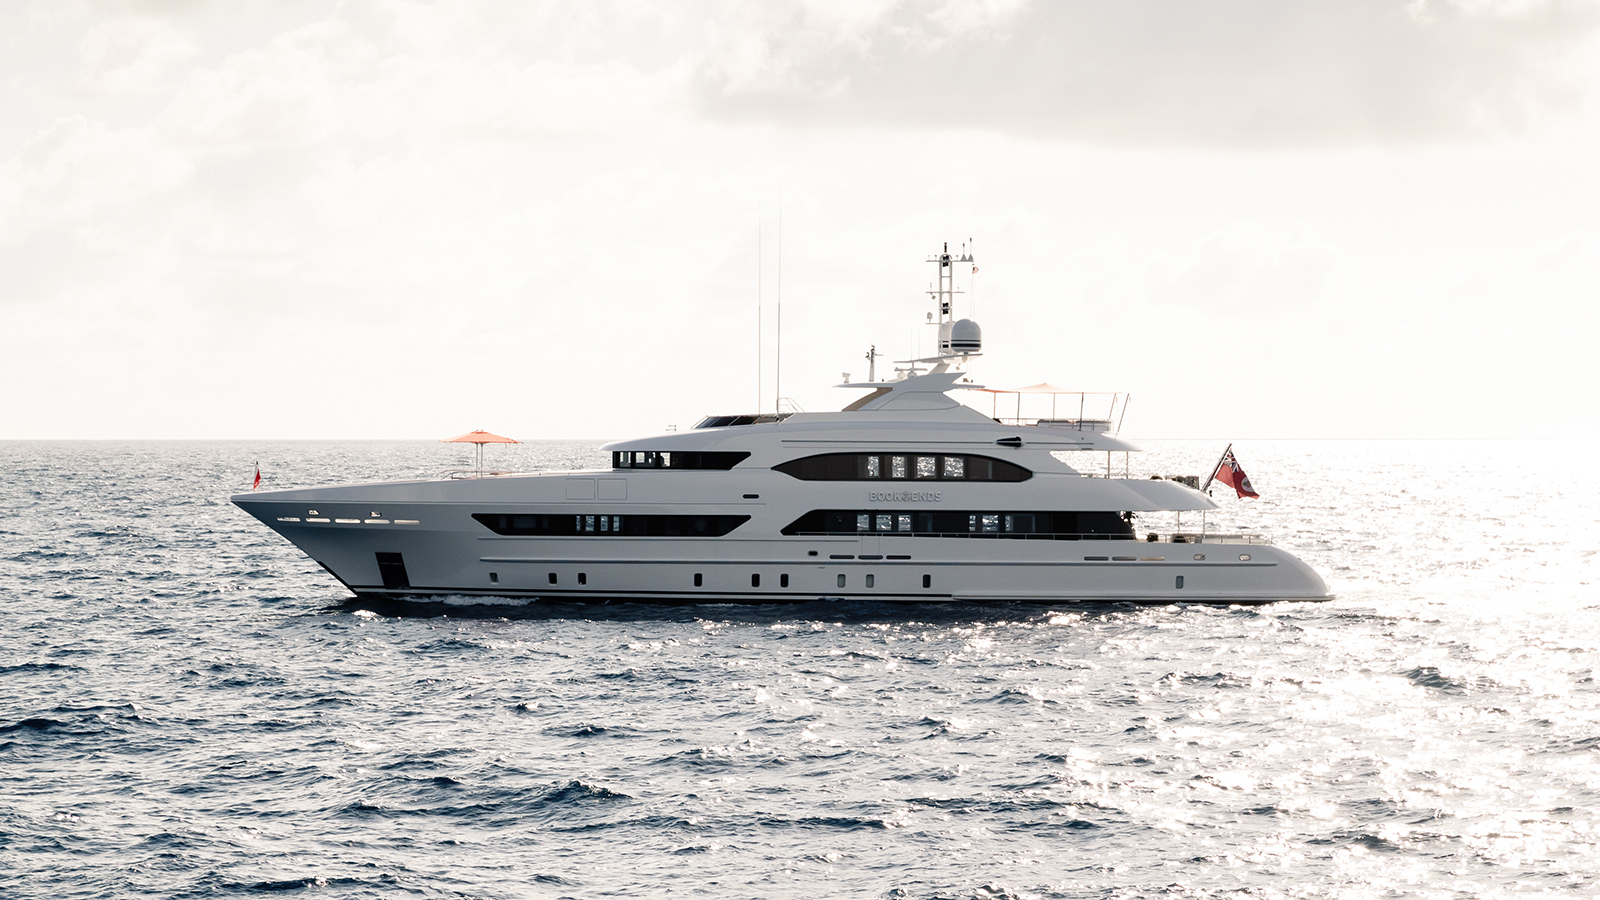 side-view-of-the-heesen-superyacht-book-ends-credit-jeff-brown-breed-media